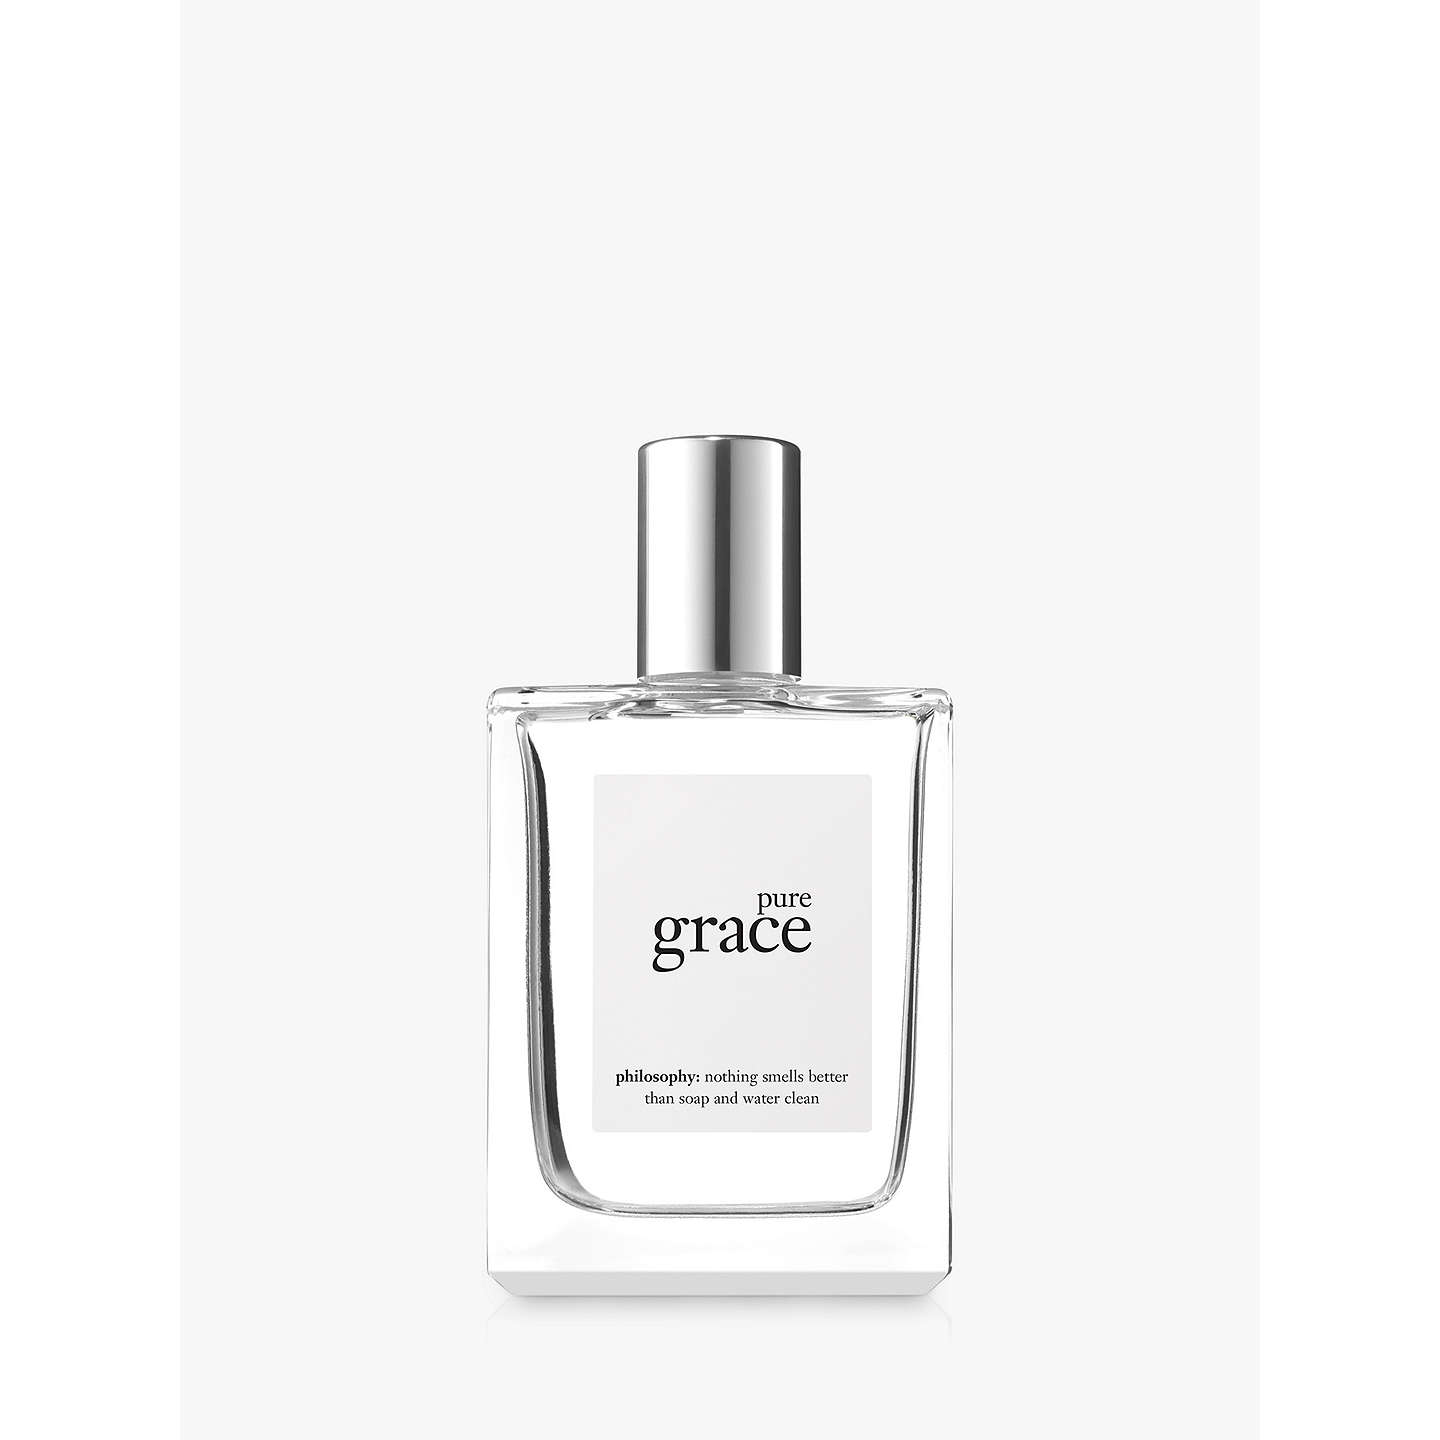 BuyPhilosophy Pure Grace Fragrance, 60ml Online at johnlewis.com